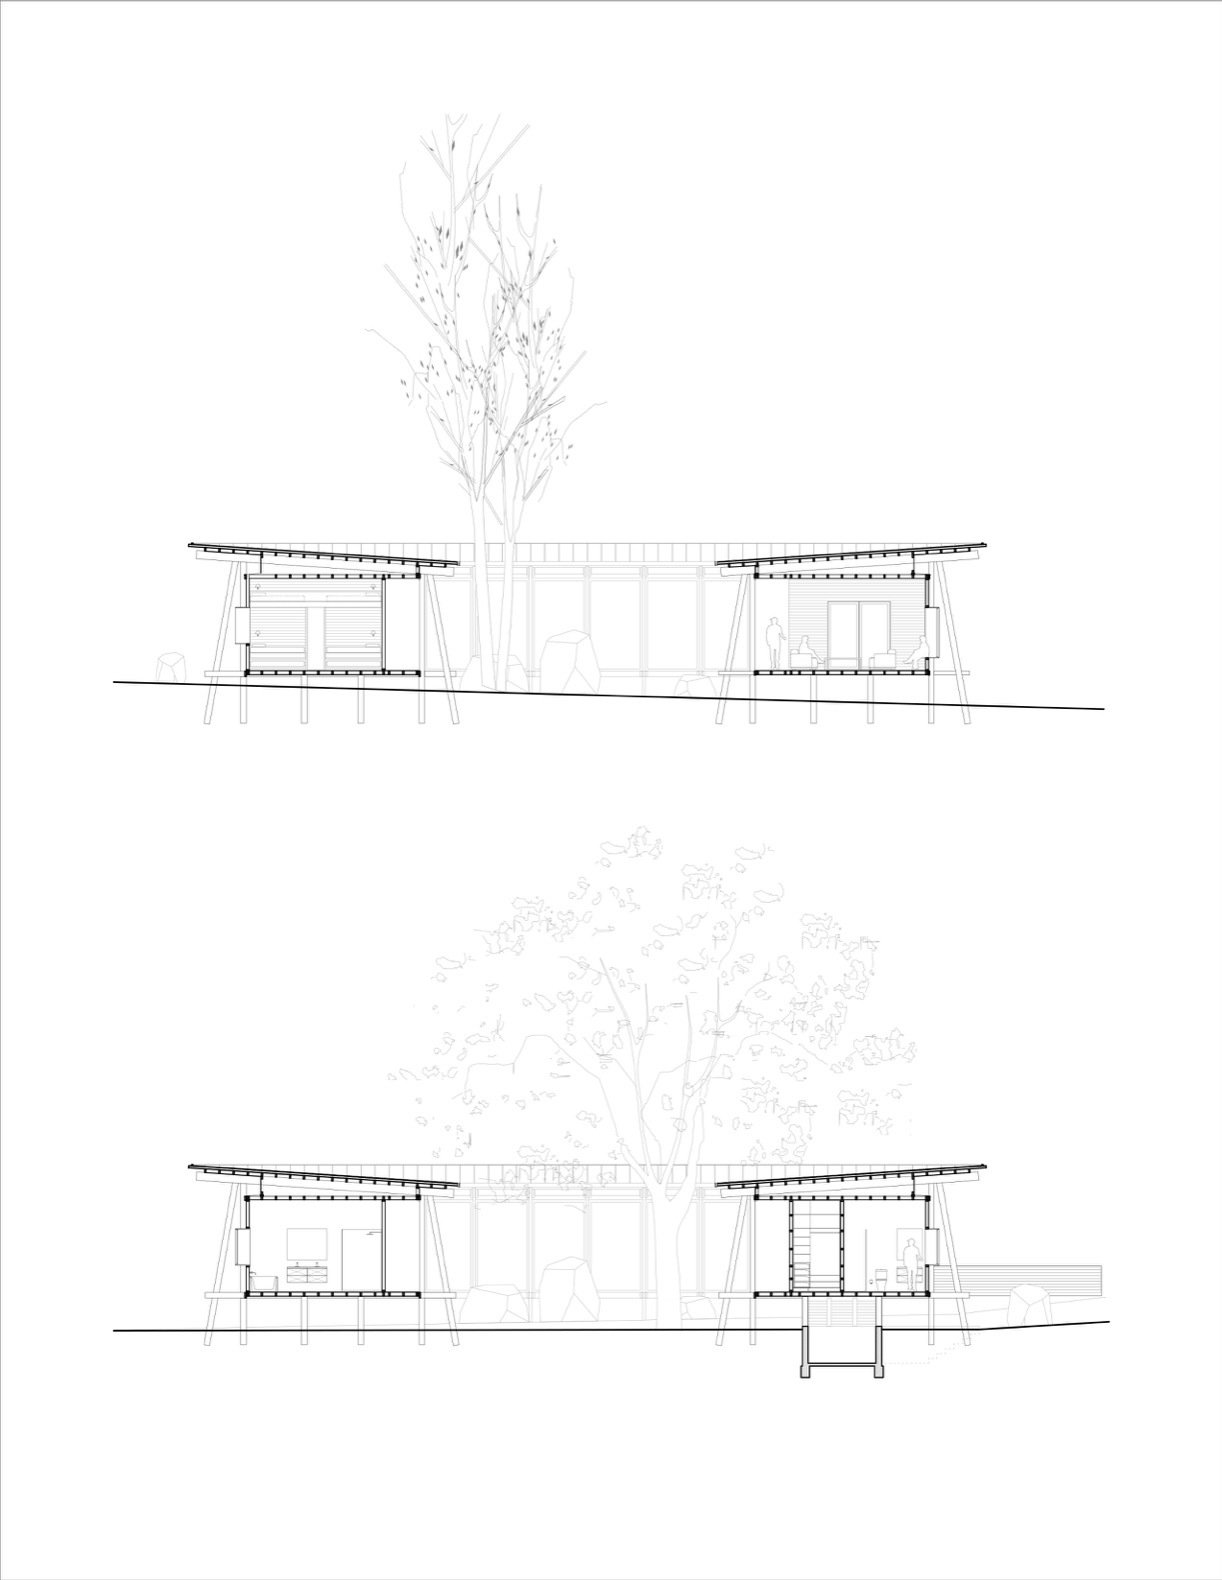 Patio House in Lago Ranco section